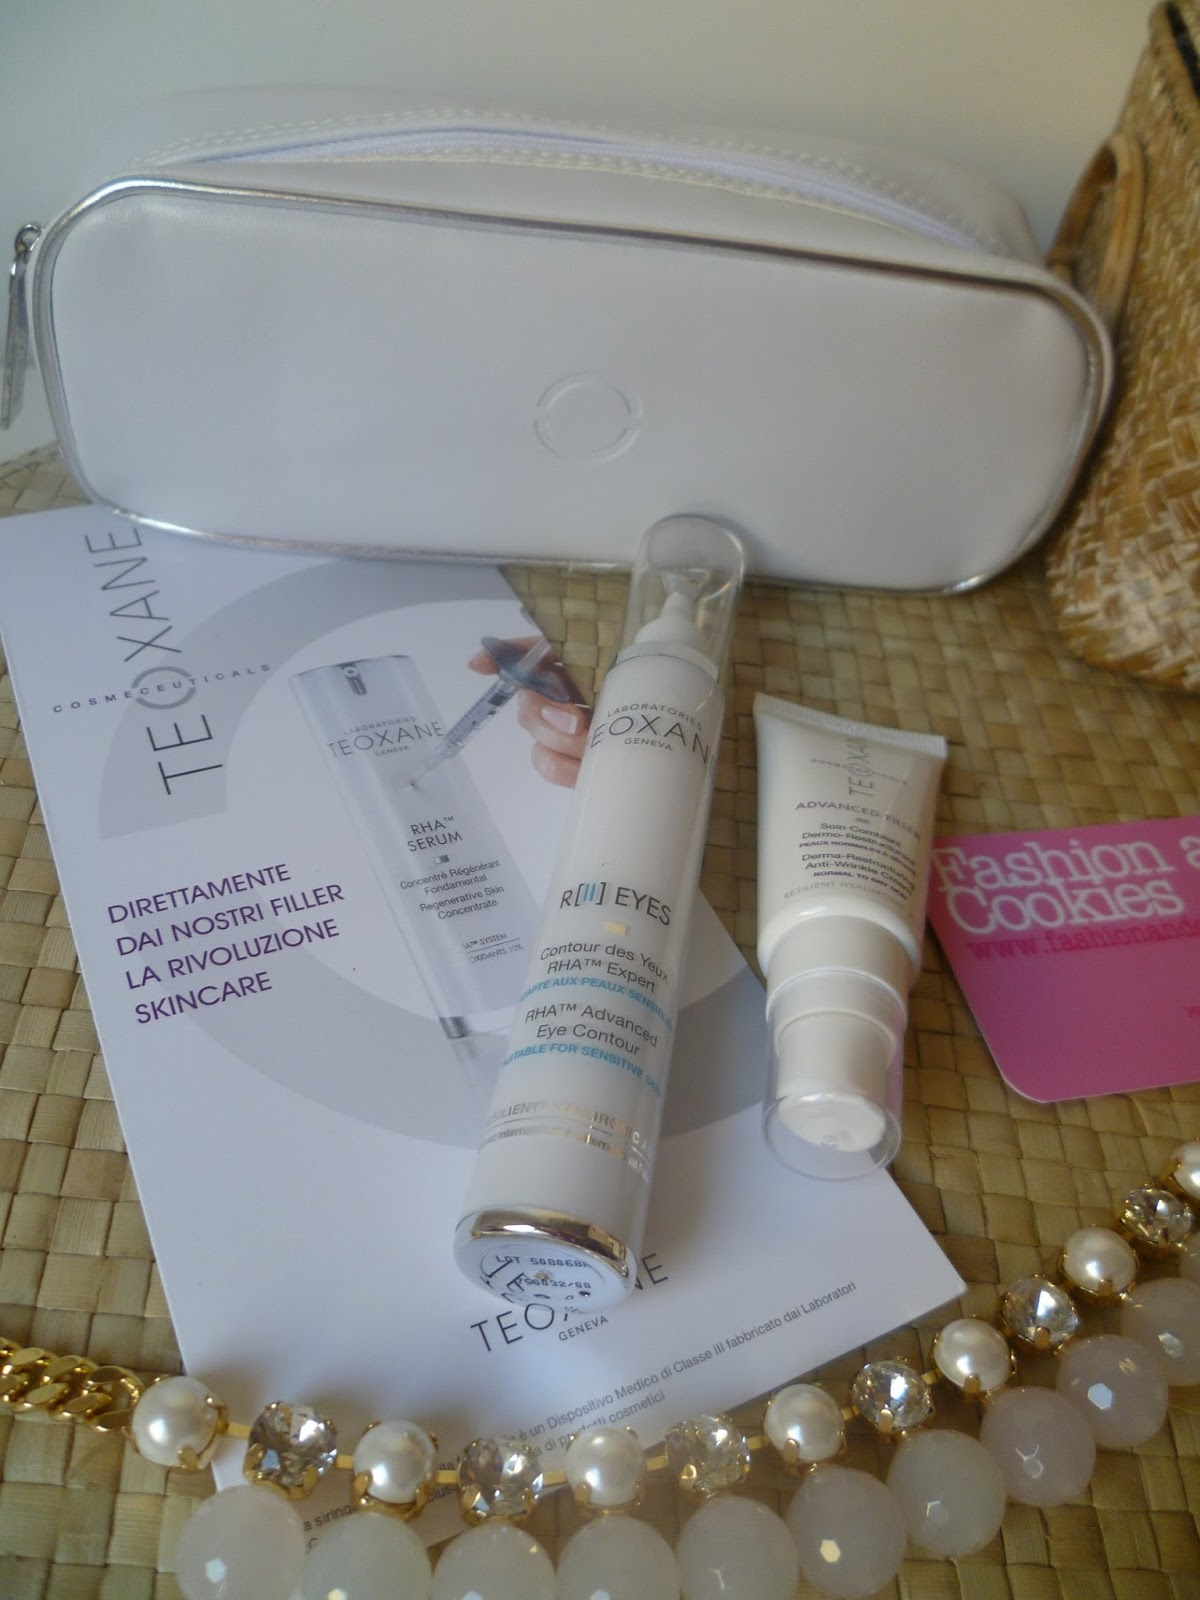 Teoxane Advanced Eye Contour review, best eye contour cream on Fashion and Cookies fashion and beauty blog